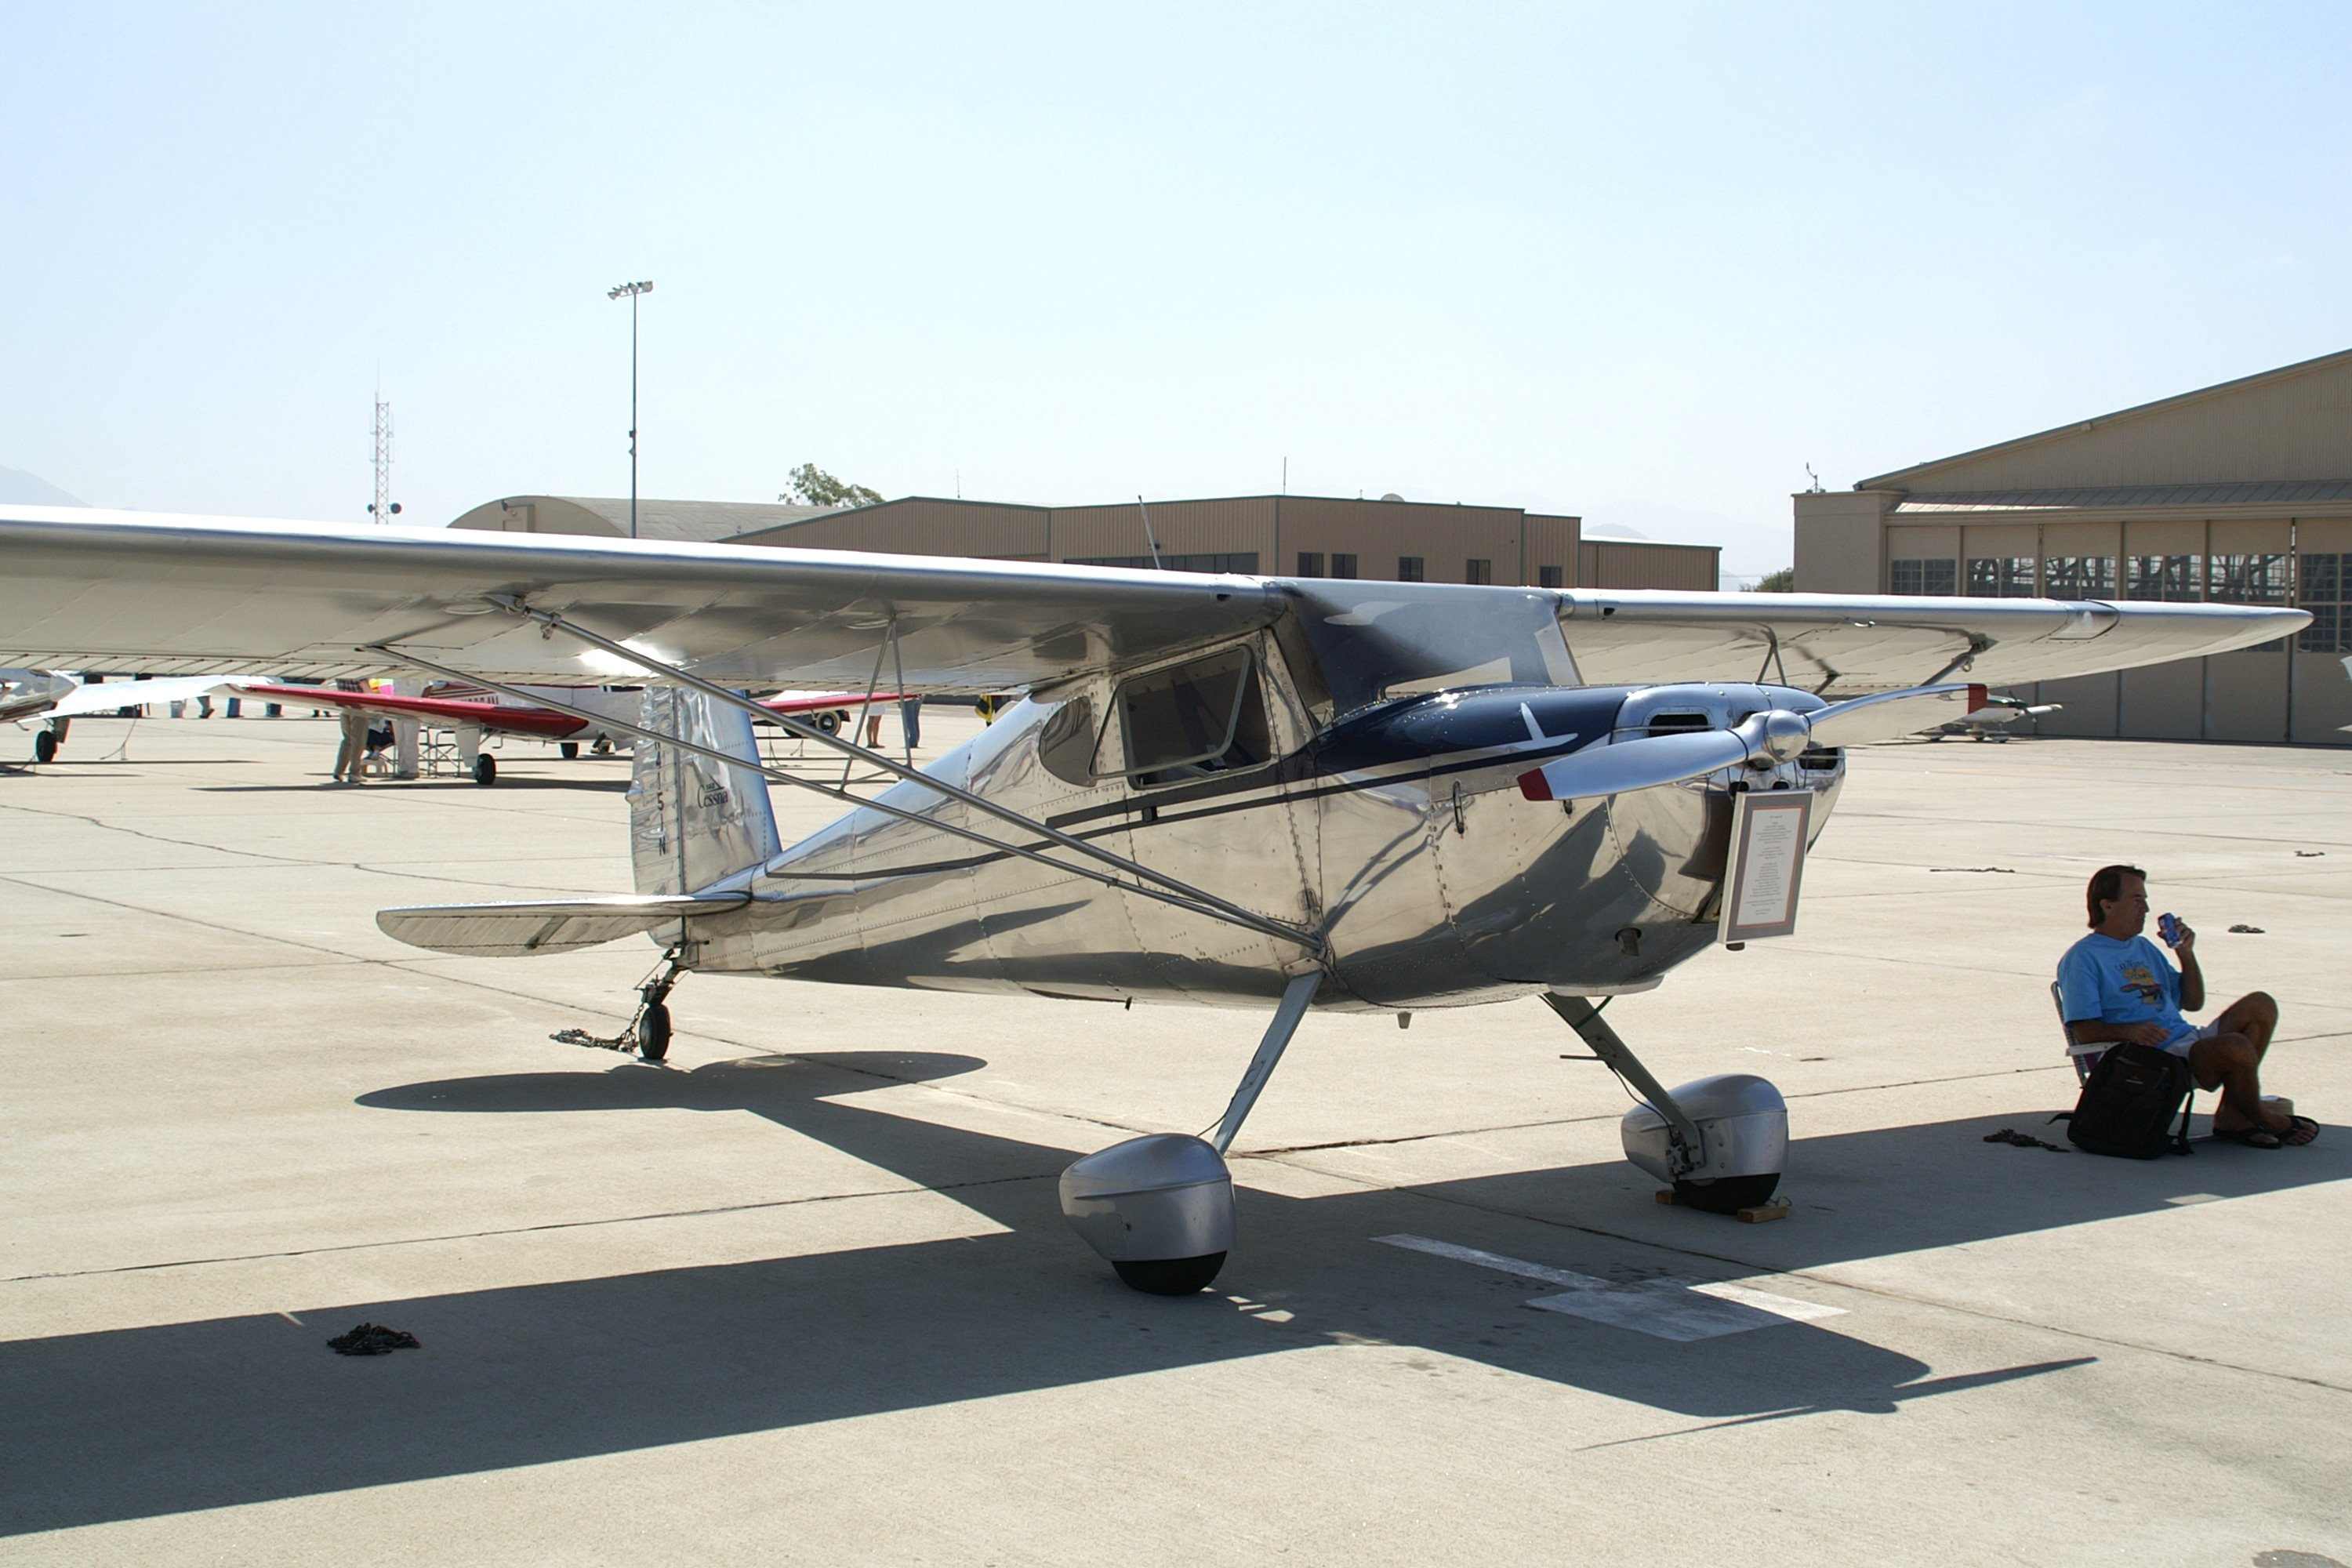 Cessna 140, Single-engine two-seat high-wing light cabin monoplane, USA